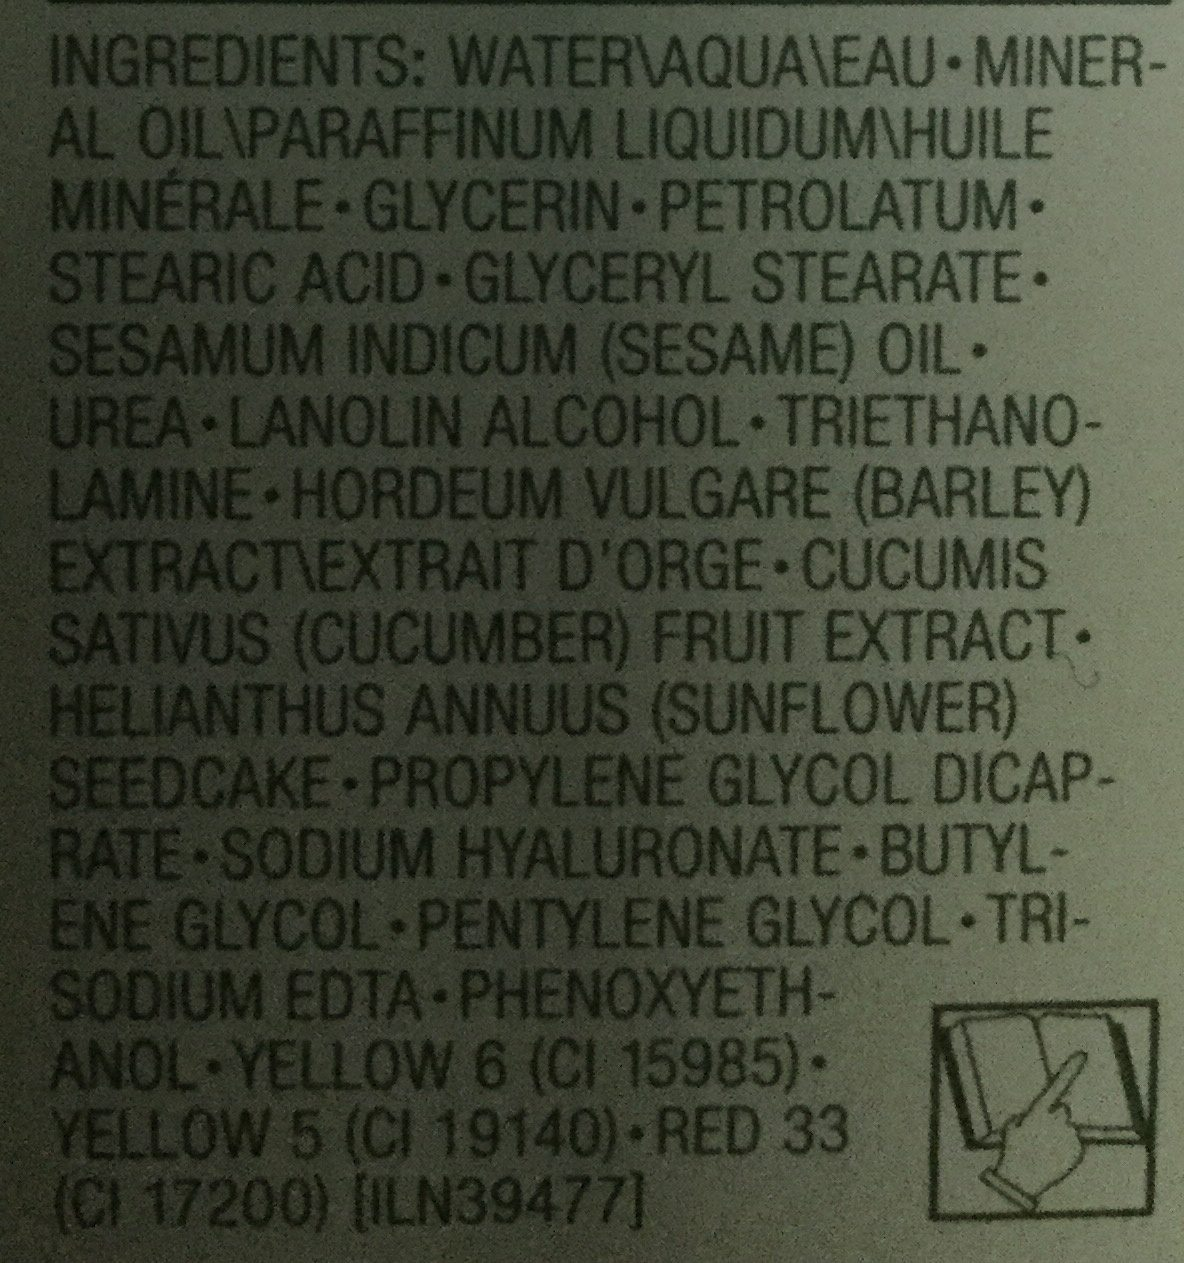 Emulsion hydratante tellement differente - Ingredients